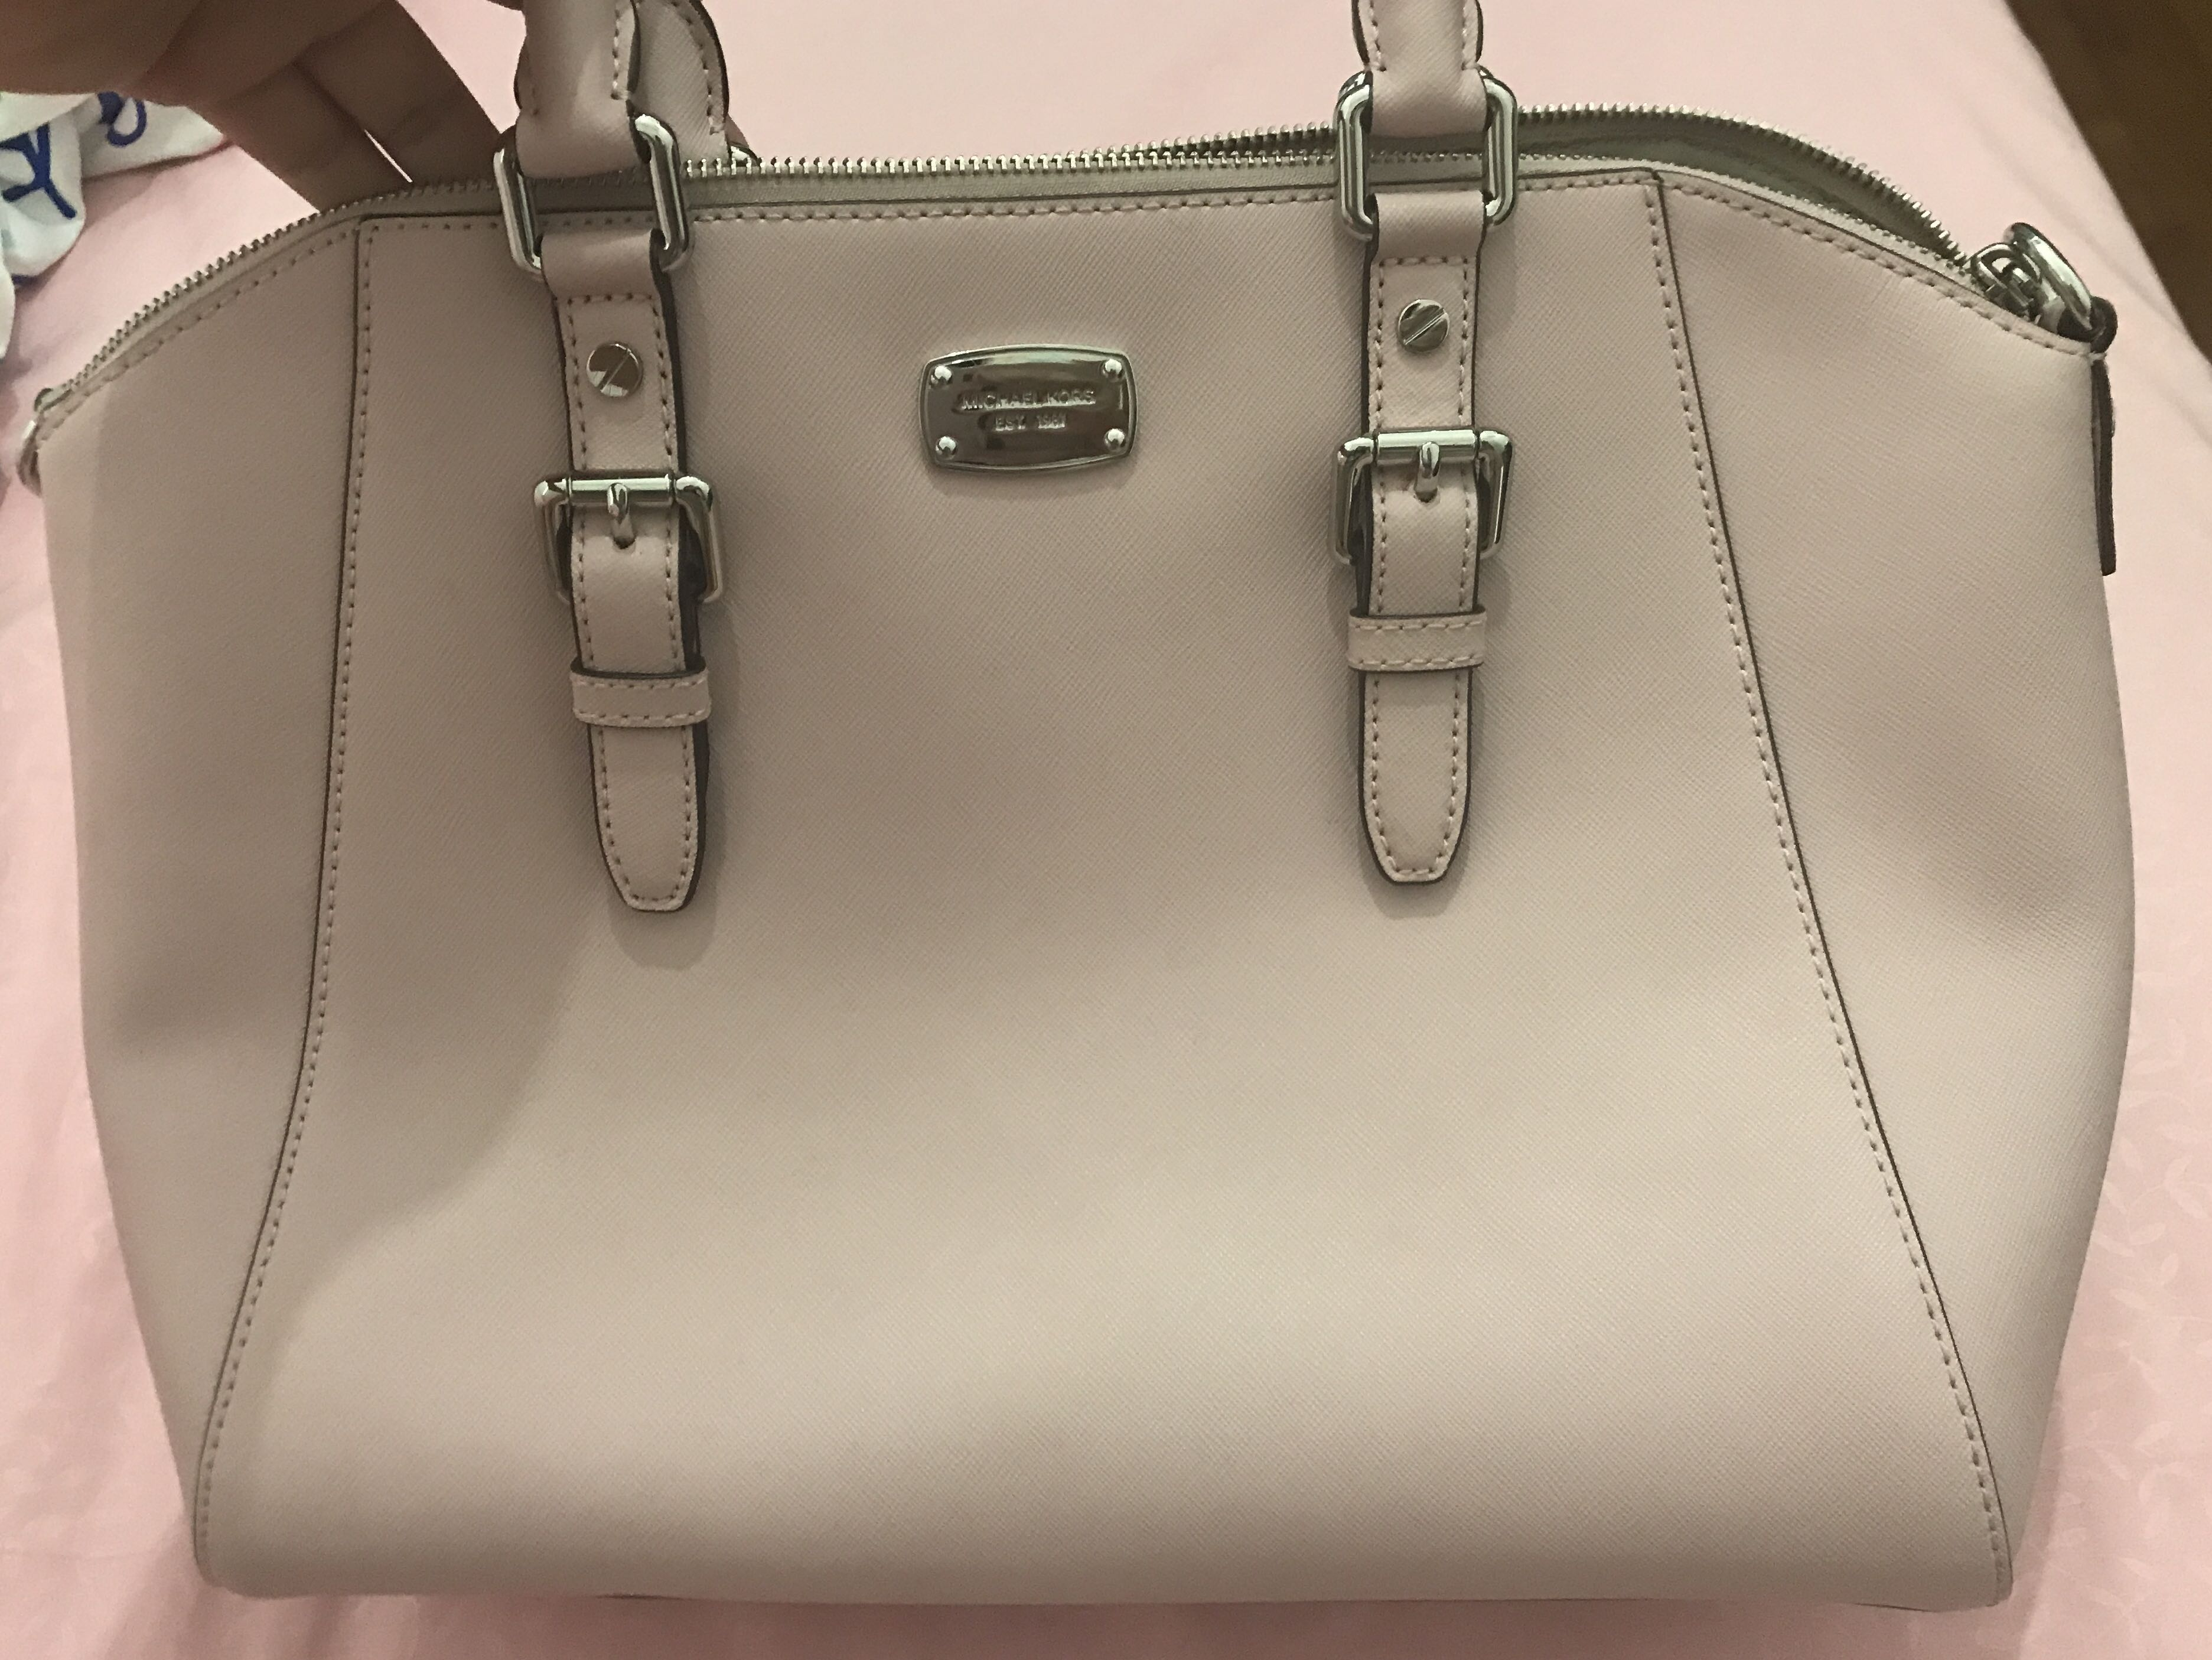 29129cbb8410 Michael Kors Baby Pink handbag with sling